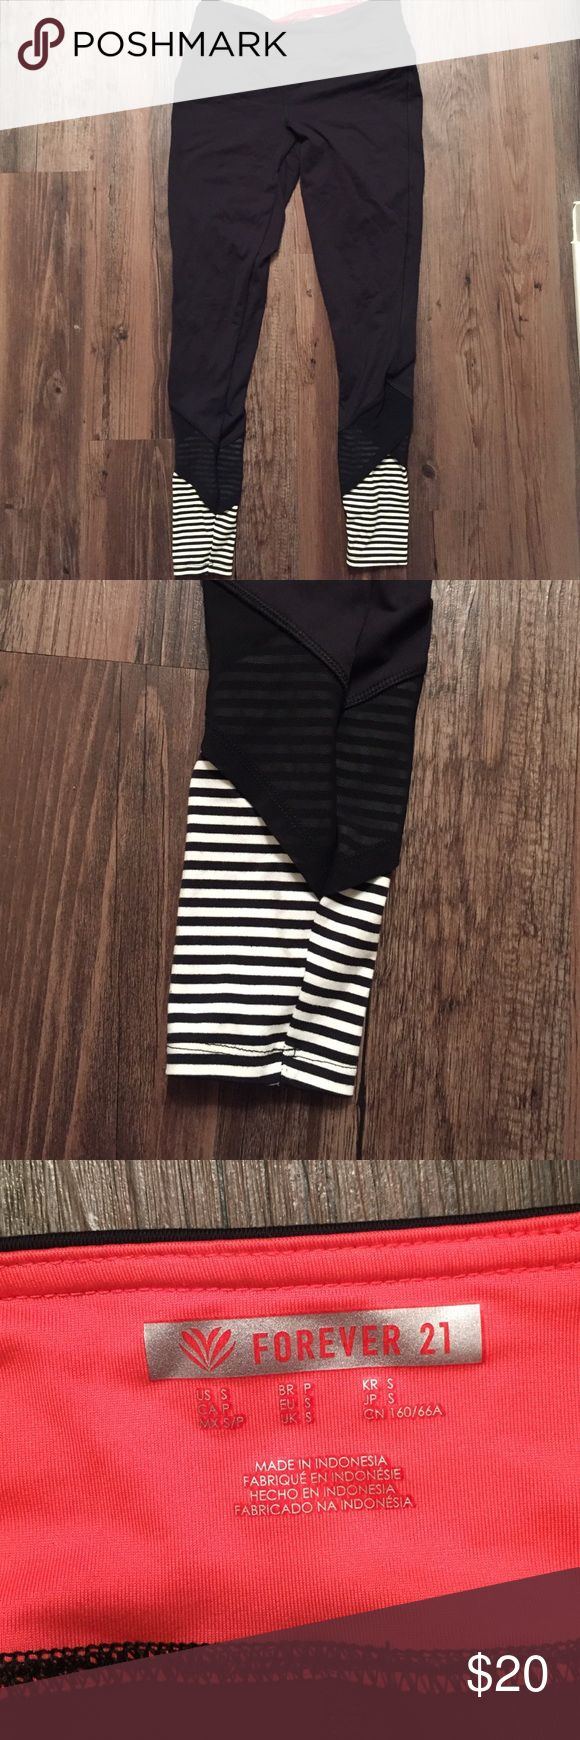 Forever 21 Black Gym Legging Pant - Striped Forever 21 women's fitness legging/tight pants. Black pant with black and white stripes at ankle with sheer overlay about and inch over the striped area. Stretchy & Comfy! Forever 21 Pants Leggings